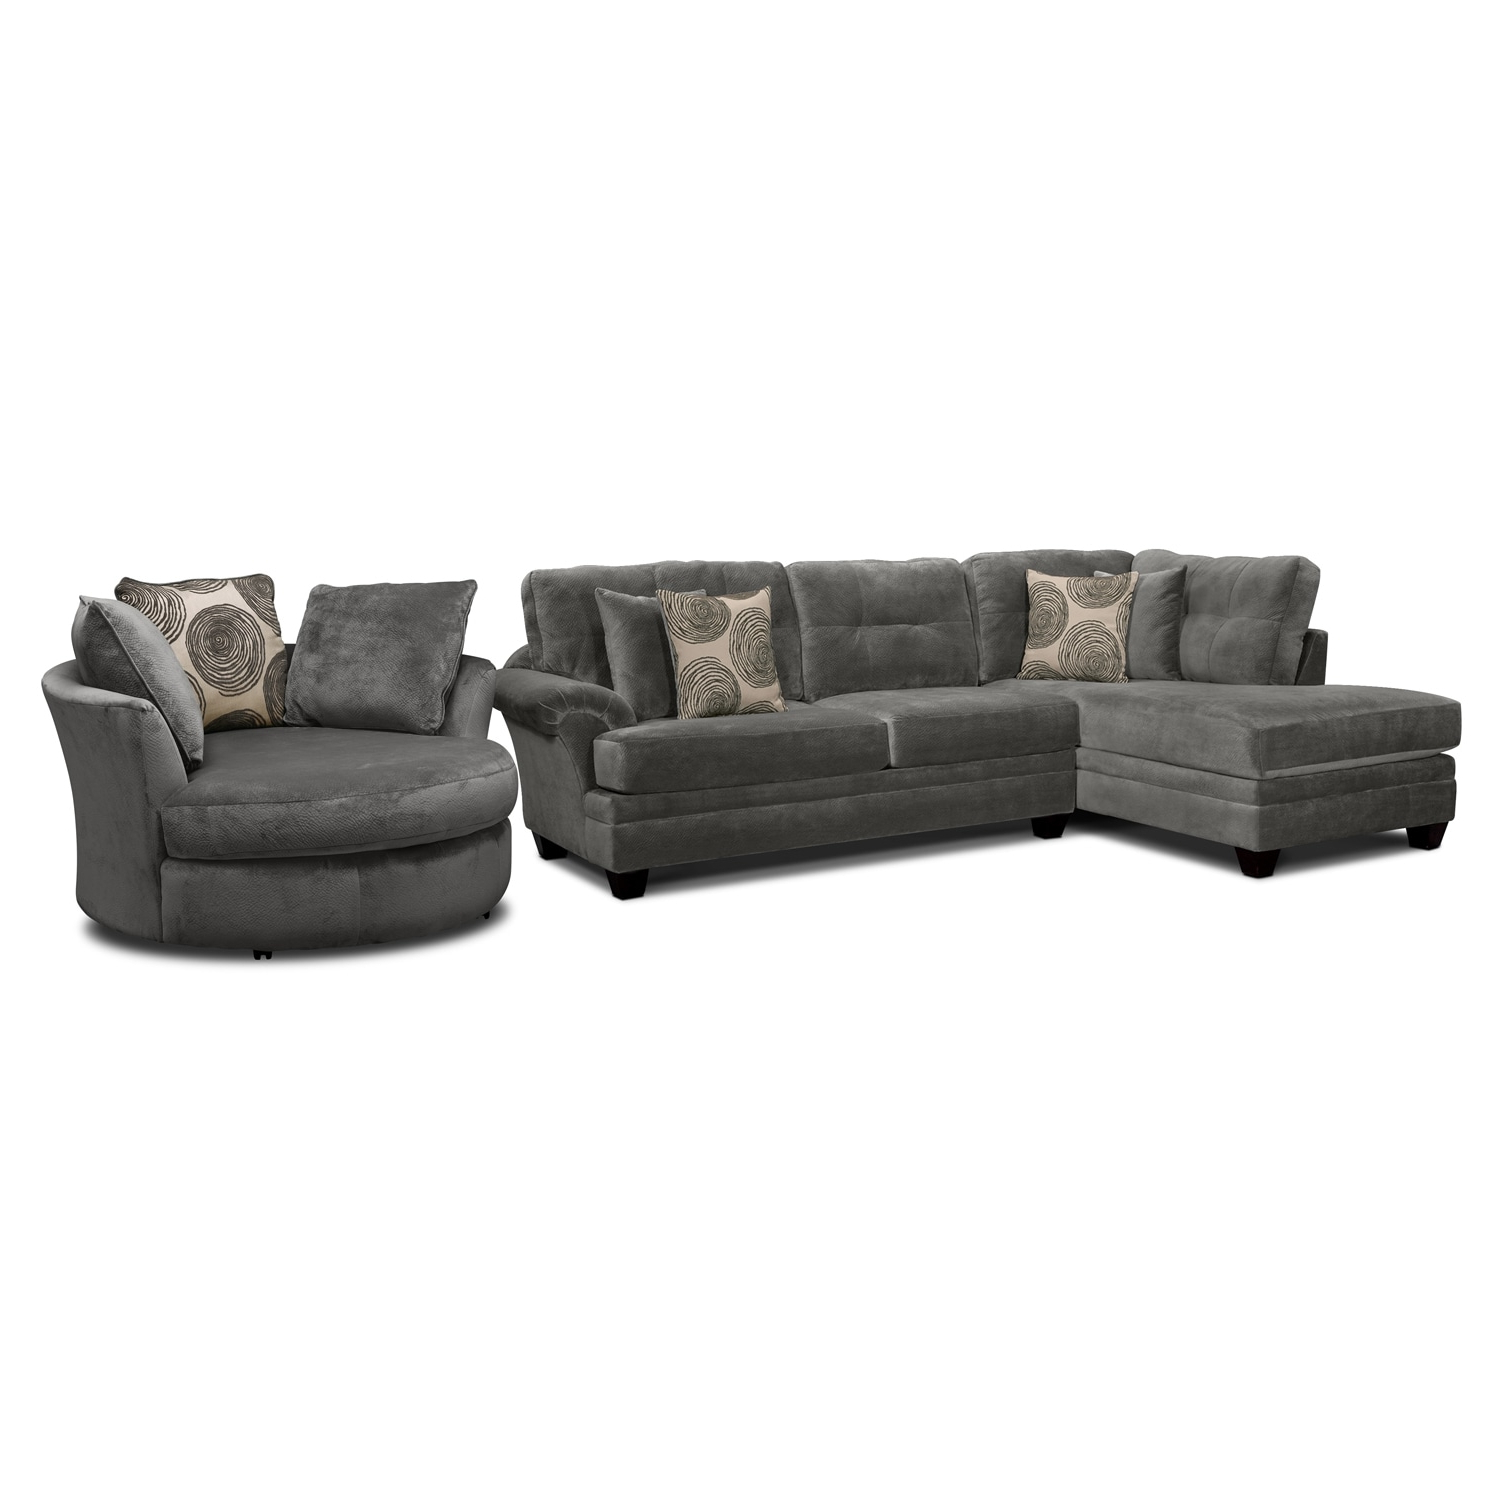 Fashionable New Left Facing Chaise Sectional Sofa – Sofas Intended For Tenny Cognac 2 Piece Left Facing Chaise Sectionals With 2 Headrest (View 20 of 20)